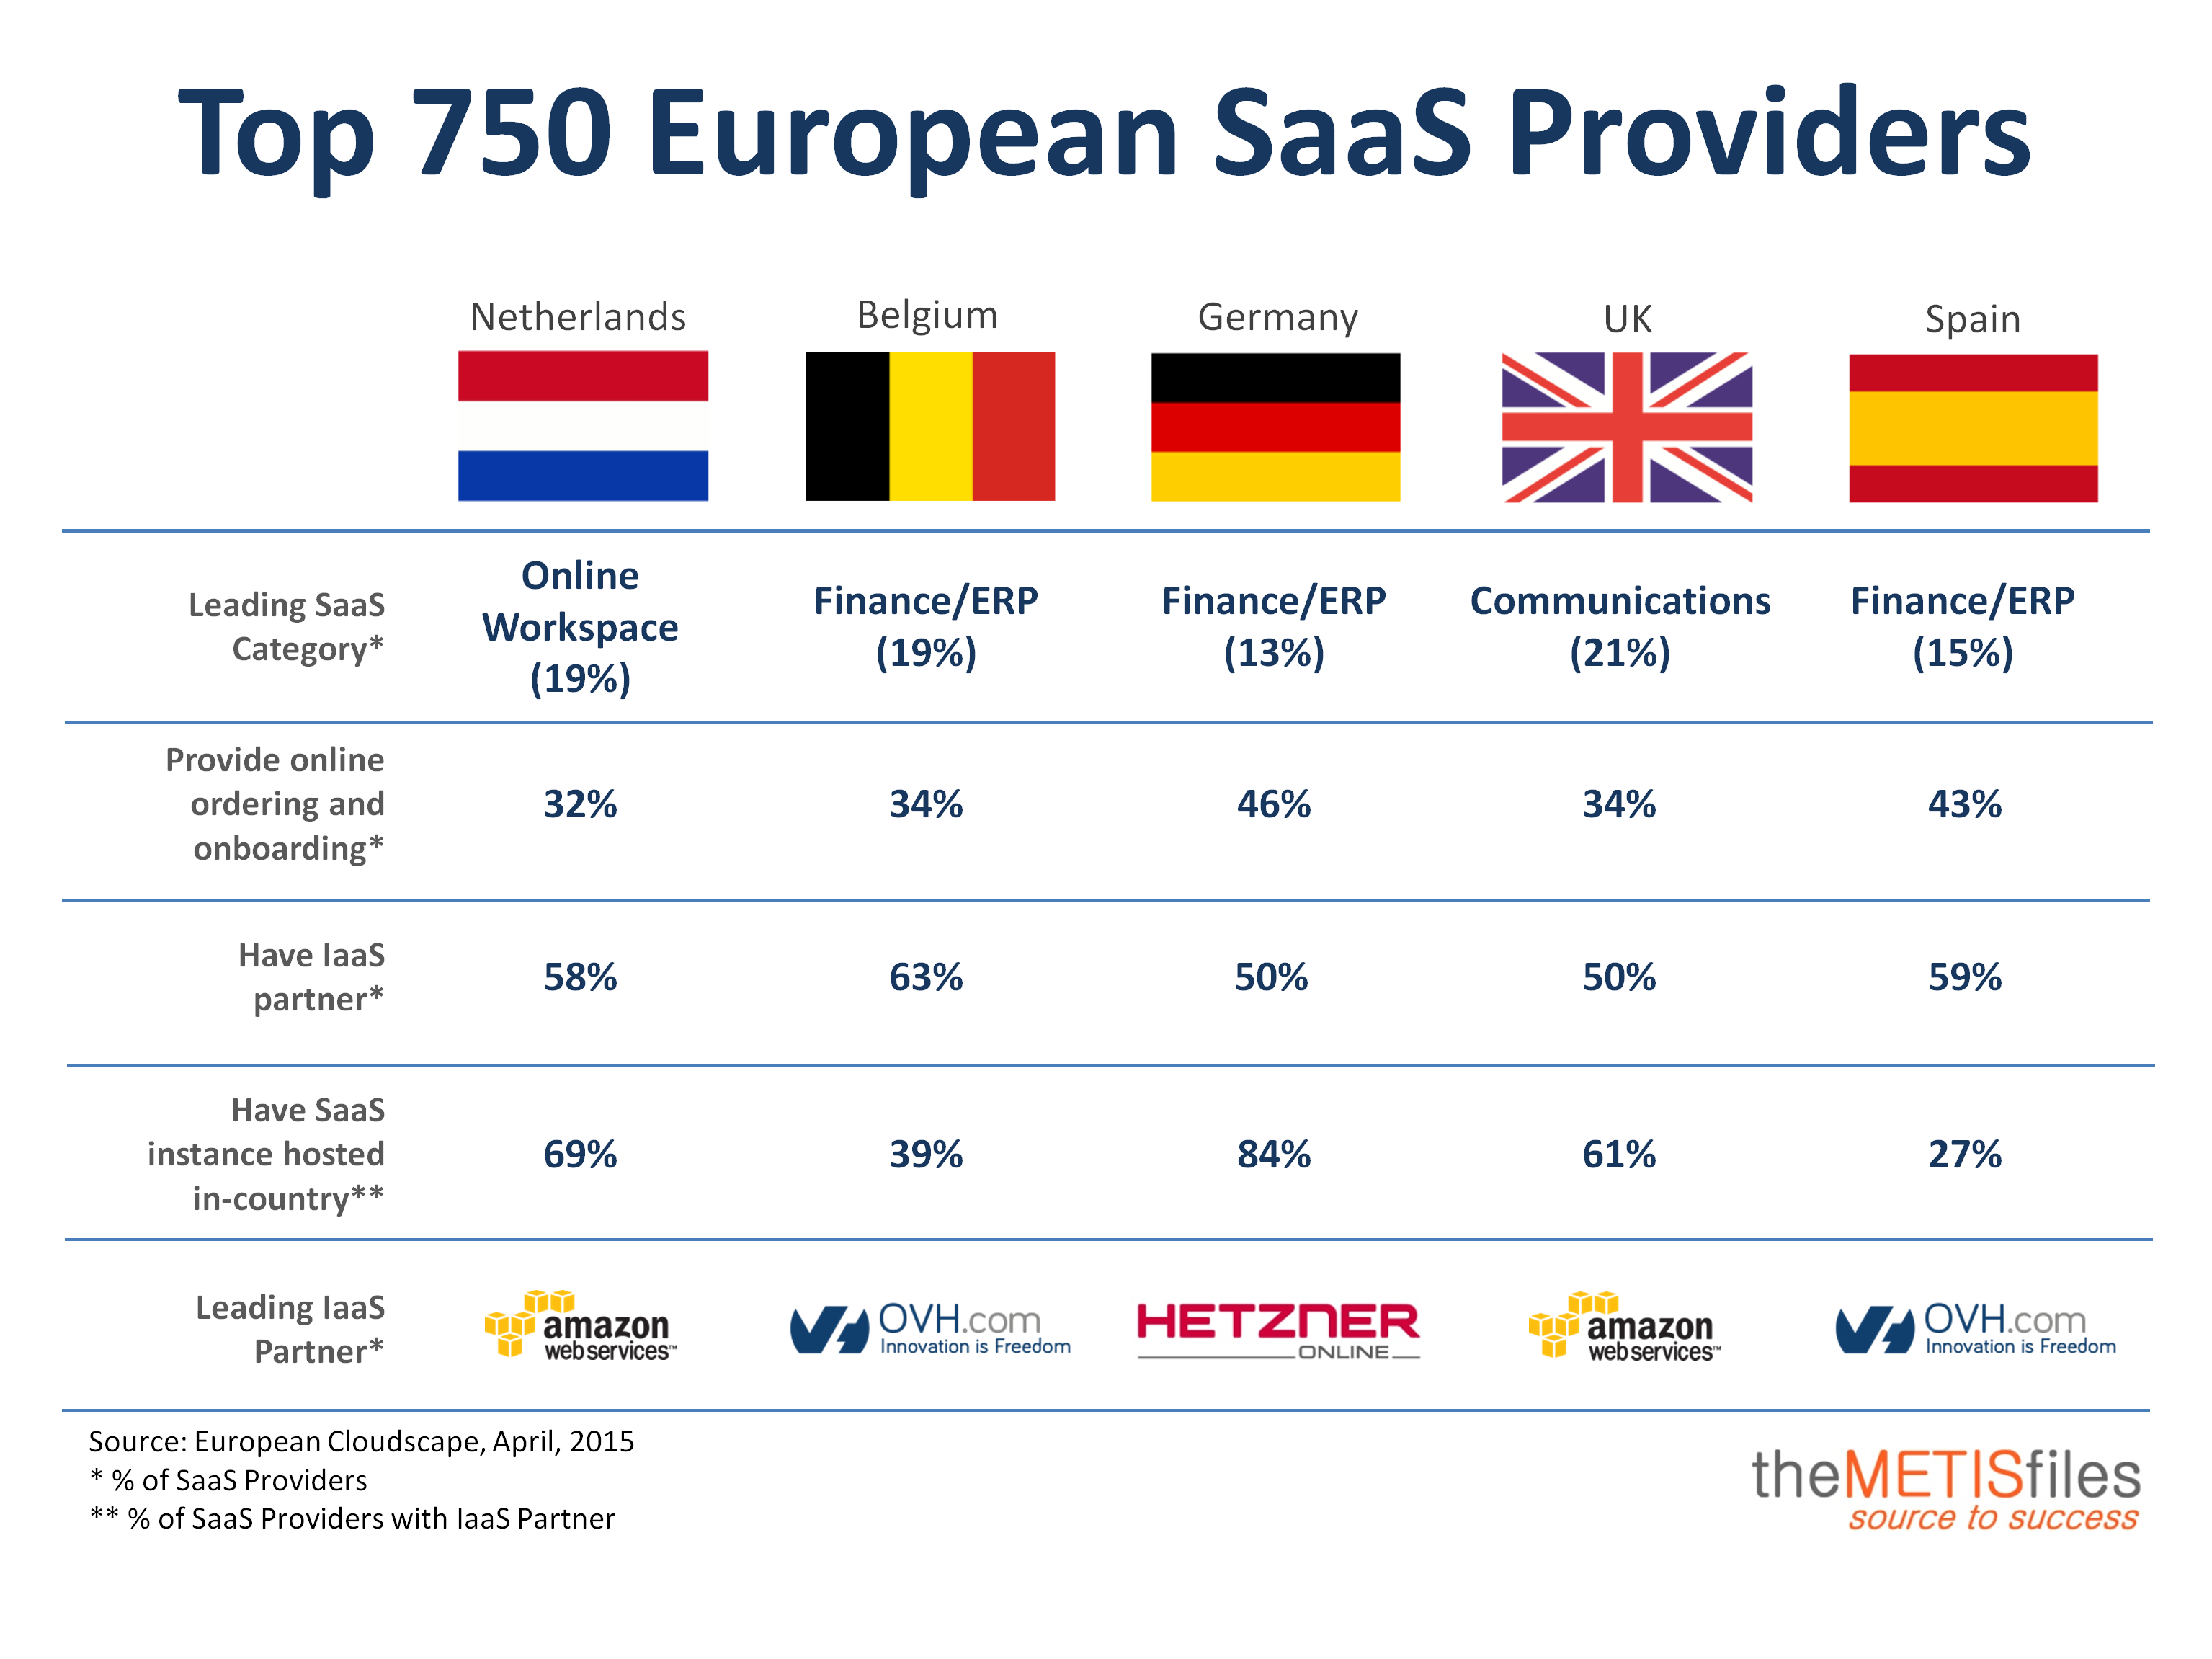 Top 750 European SaaS Providers